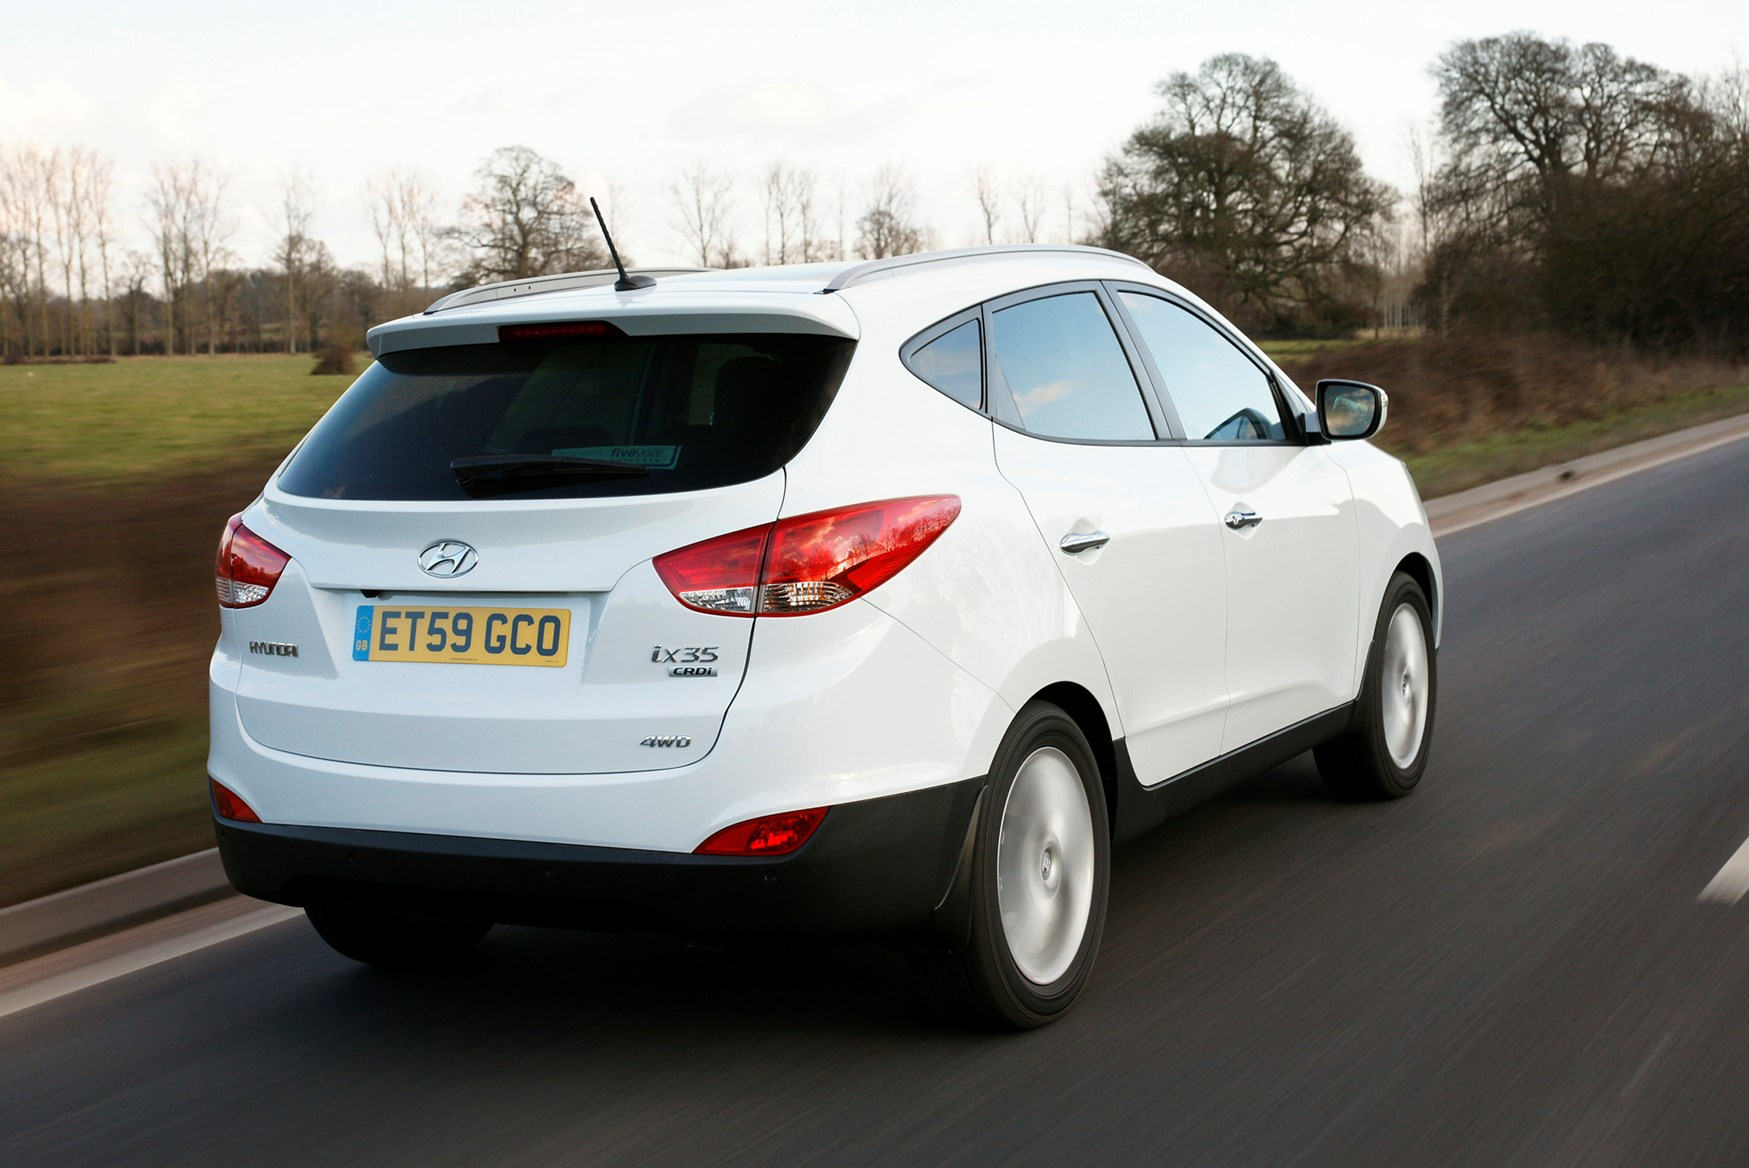 Car Hyundai X35: technical characteristics, owners reviews, photo